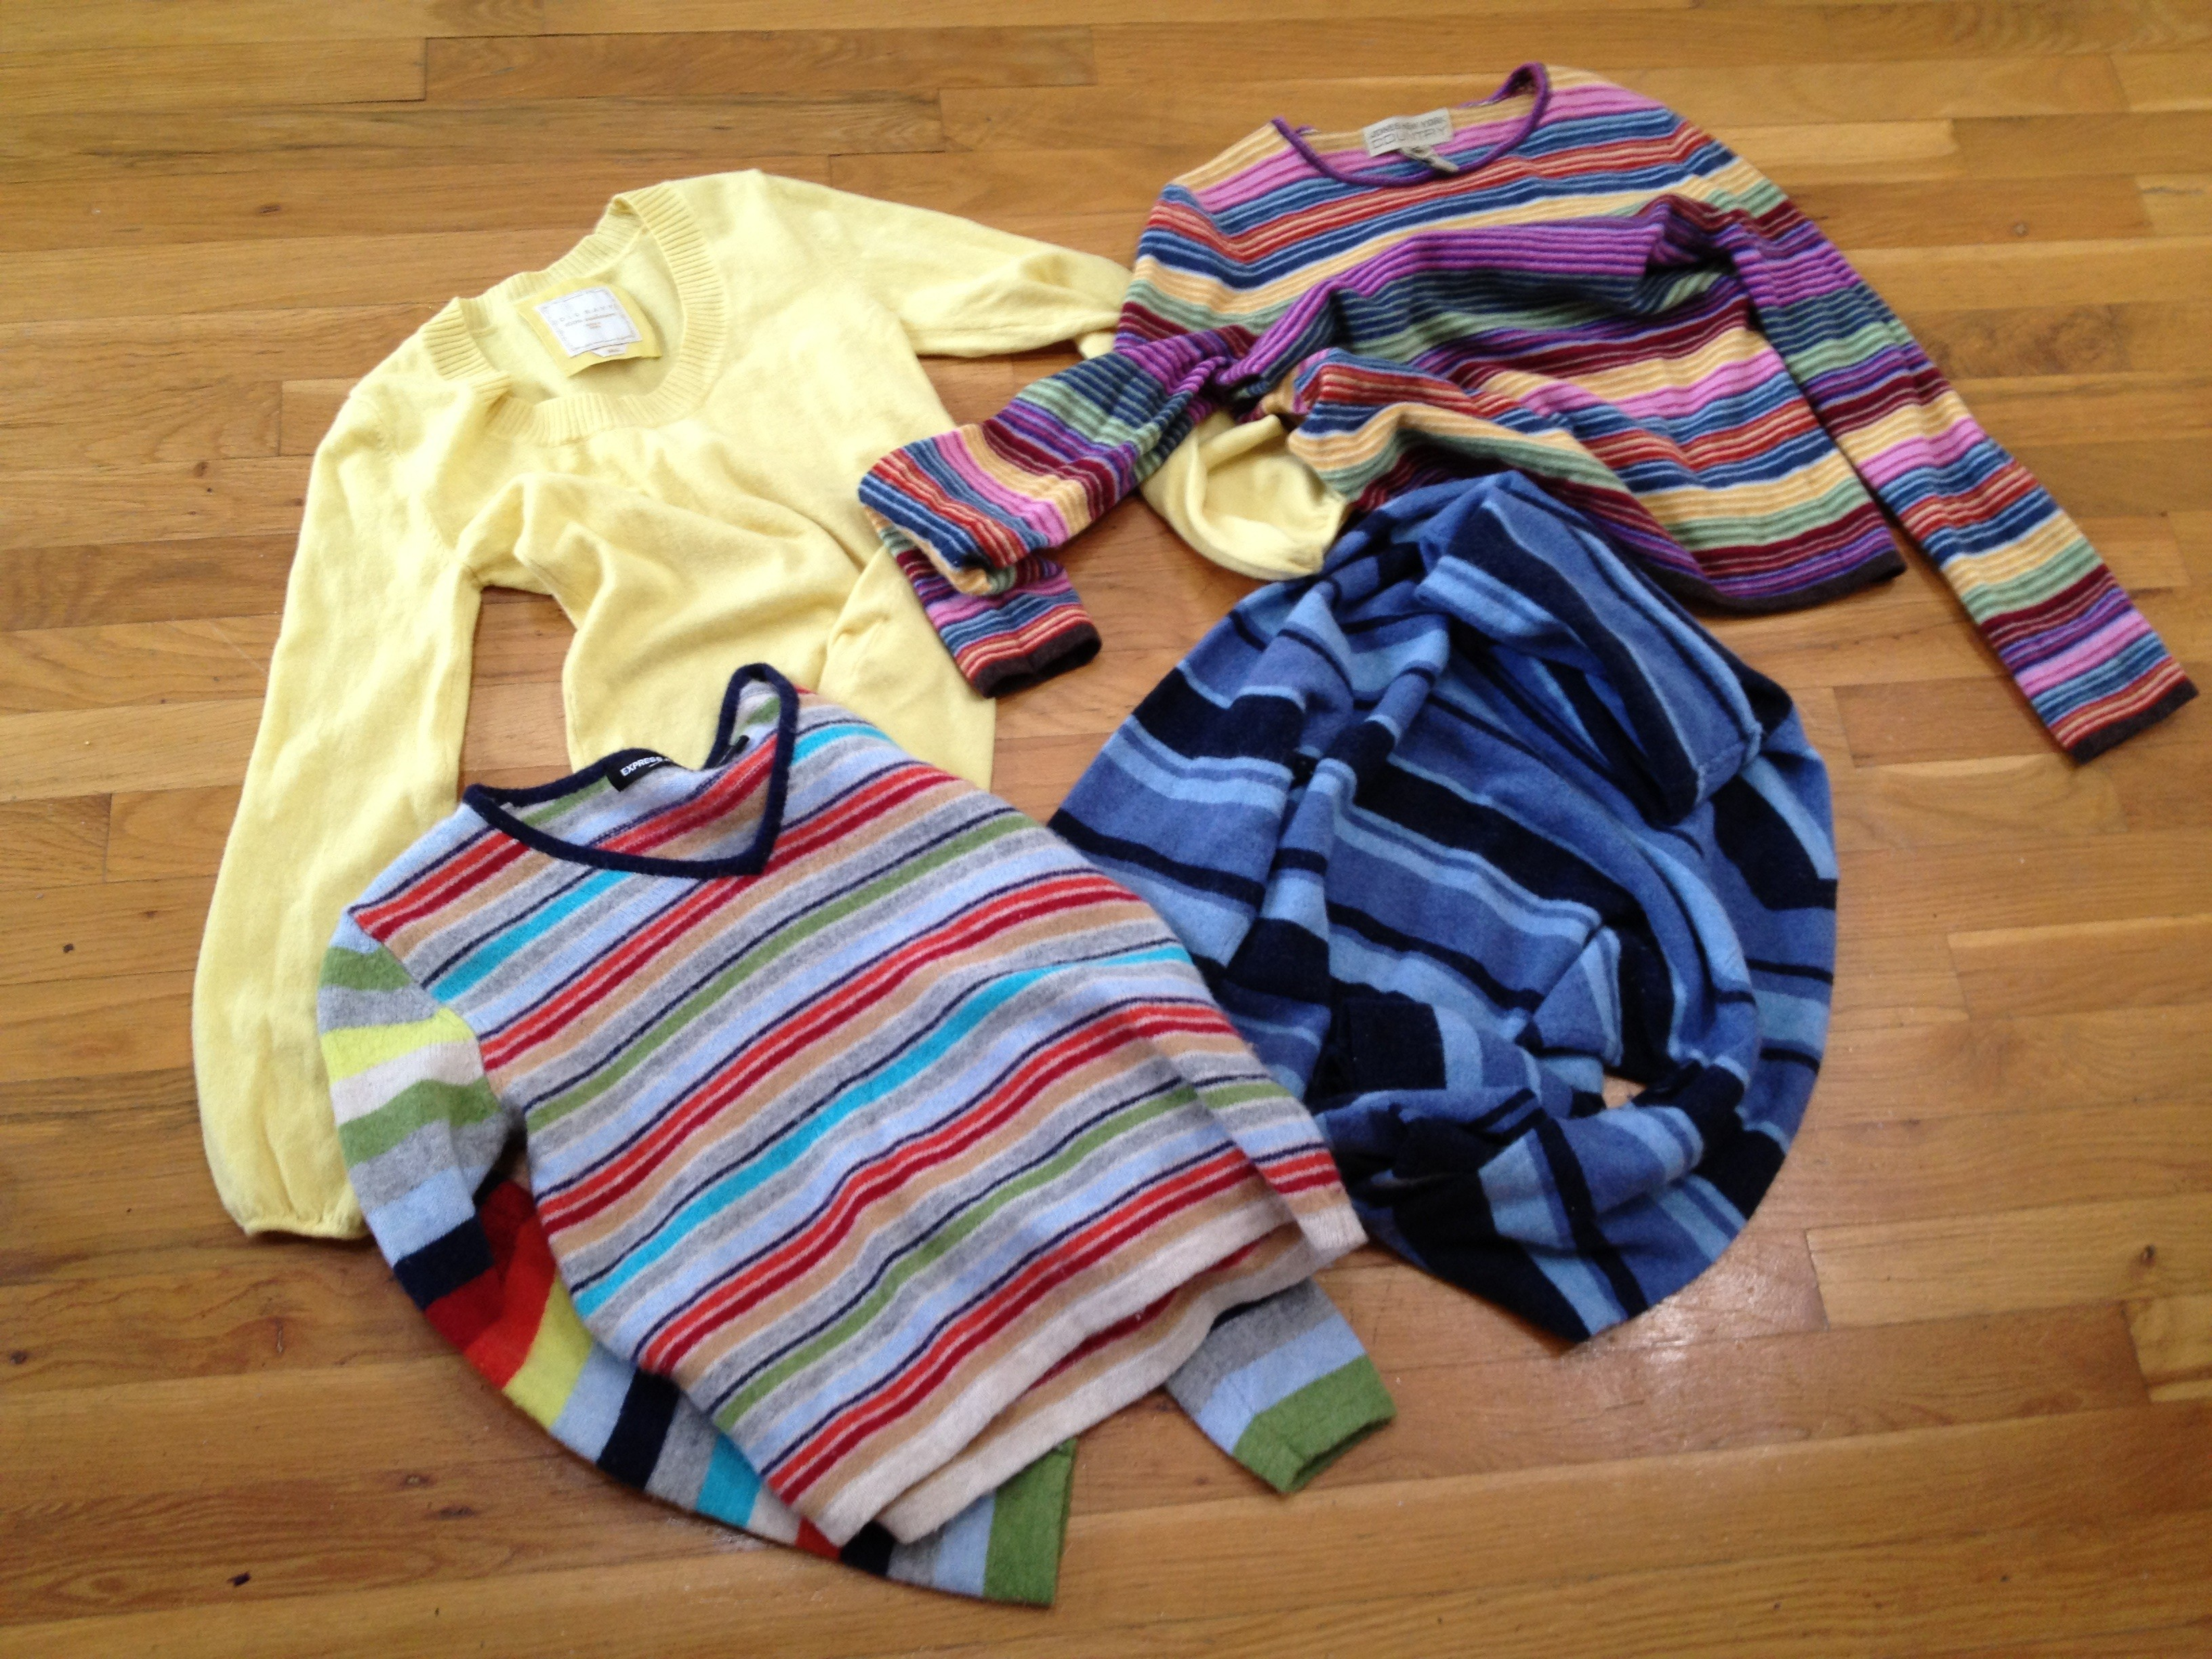 wool sweaters for diaper covers